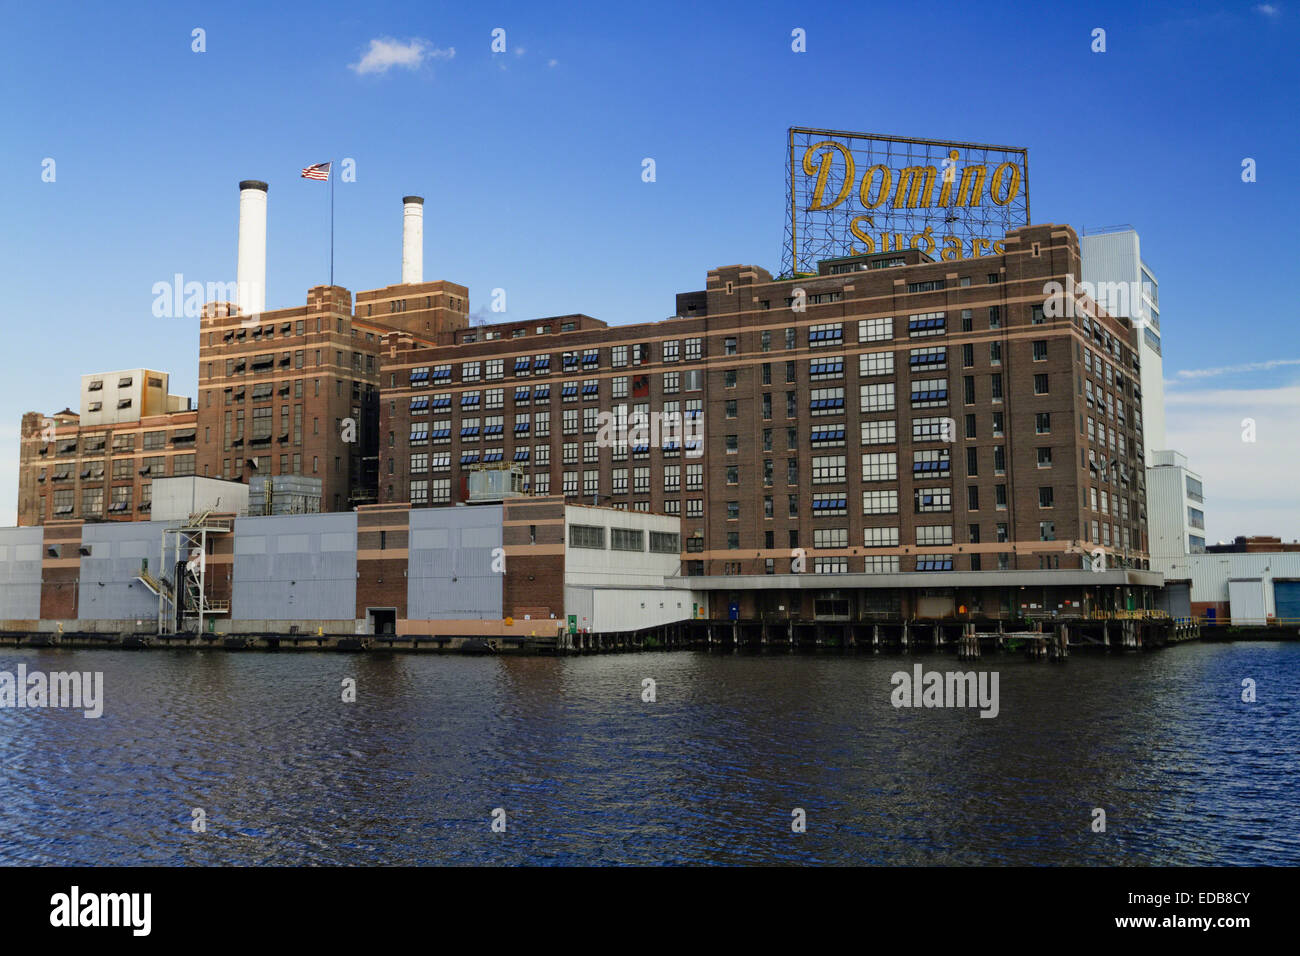 Low Angle View of an Industrial Building in a Bay, Domino Sugars, Baltimore, Maryland - Stock Image